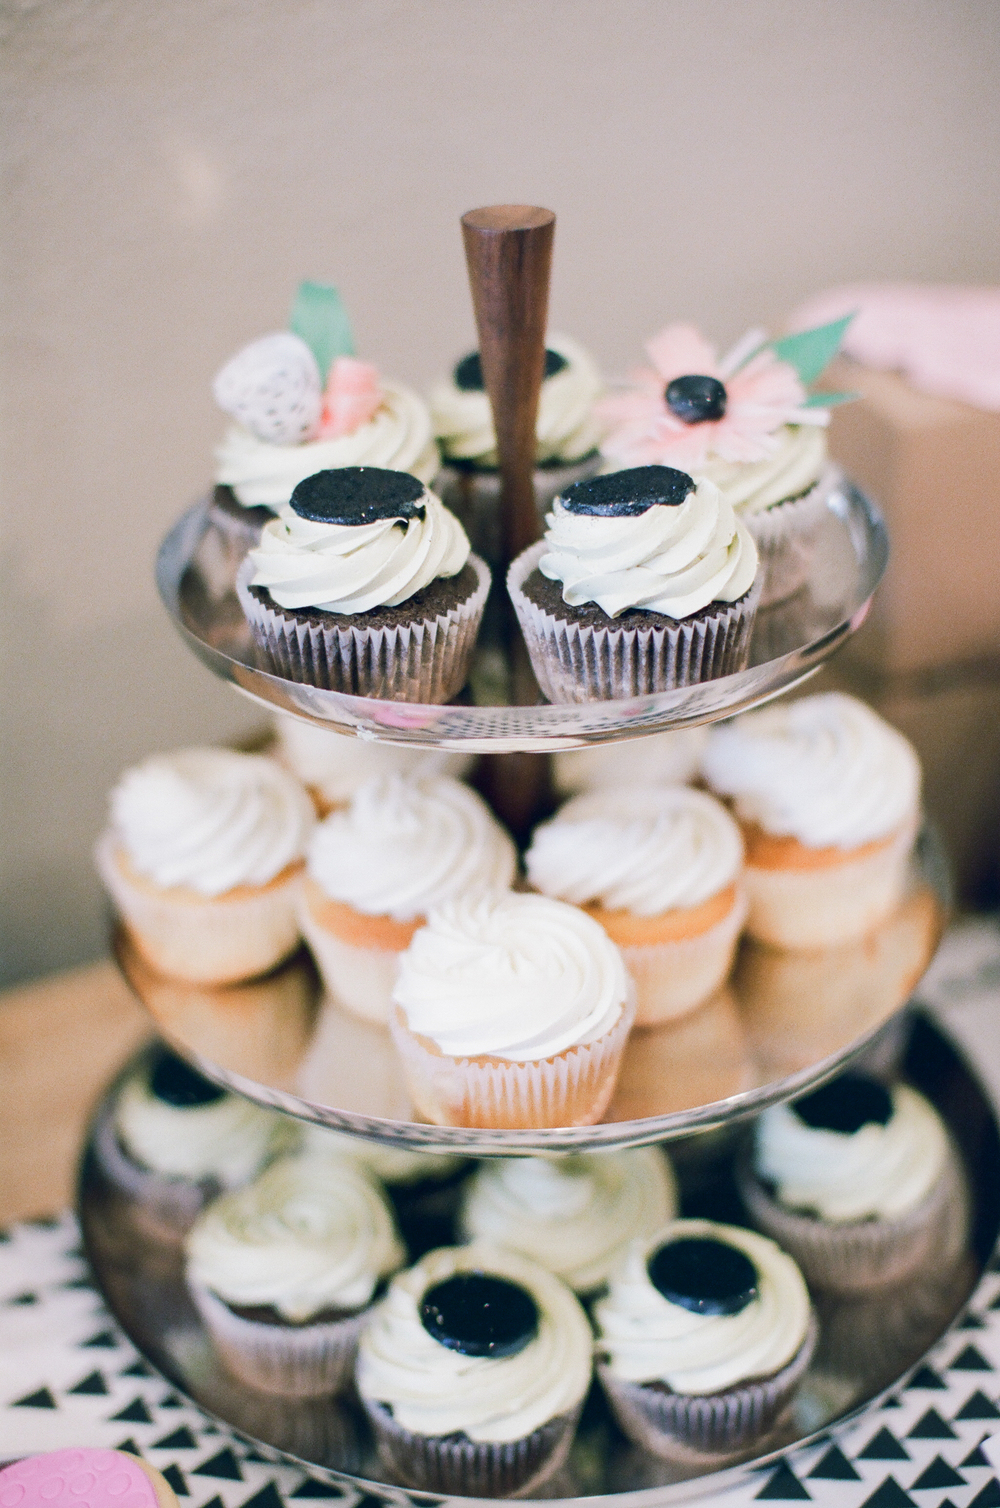 Delicious cupcakes by Sweets Cakes & Pastry